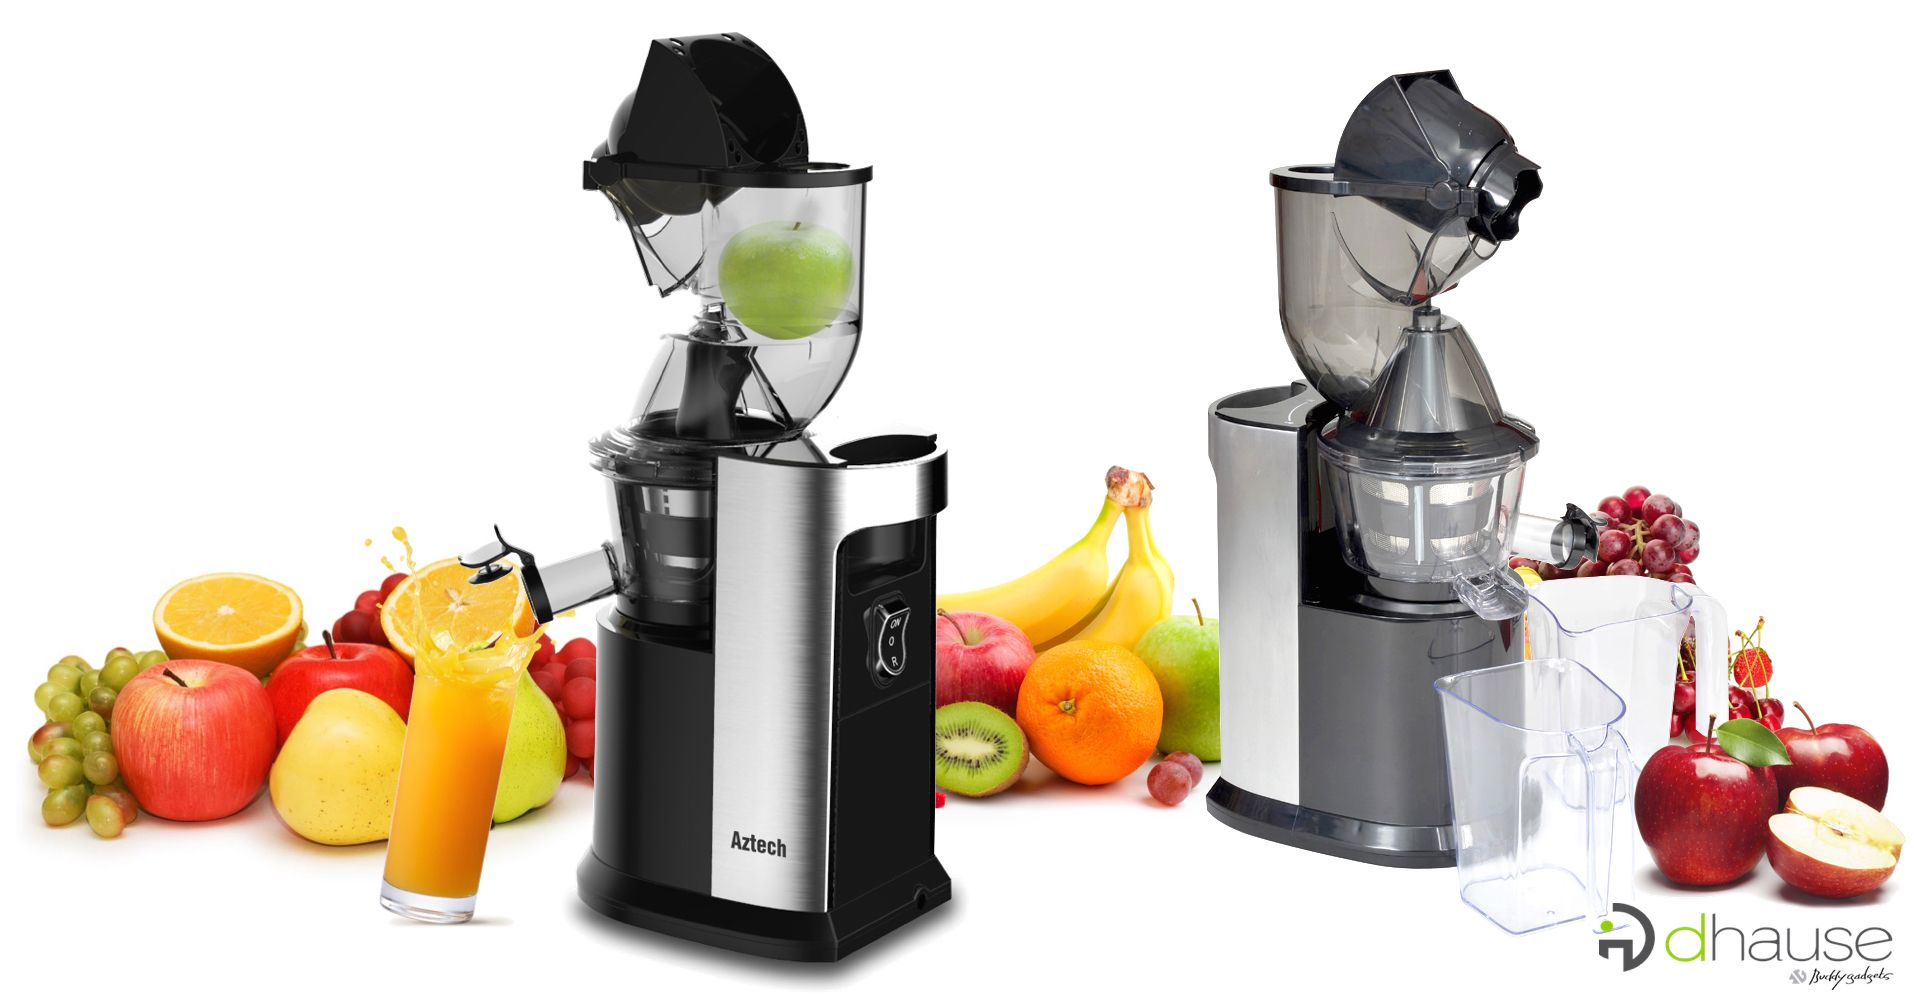 Aztech Juicemax Slow Juicer Review : Slow Juicer. . Produc Images. . Aimox Slow Juicer. Skg New Generation Slow Juicers Solve One Of ...